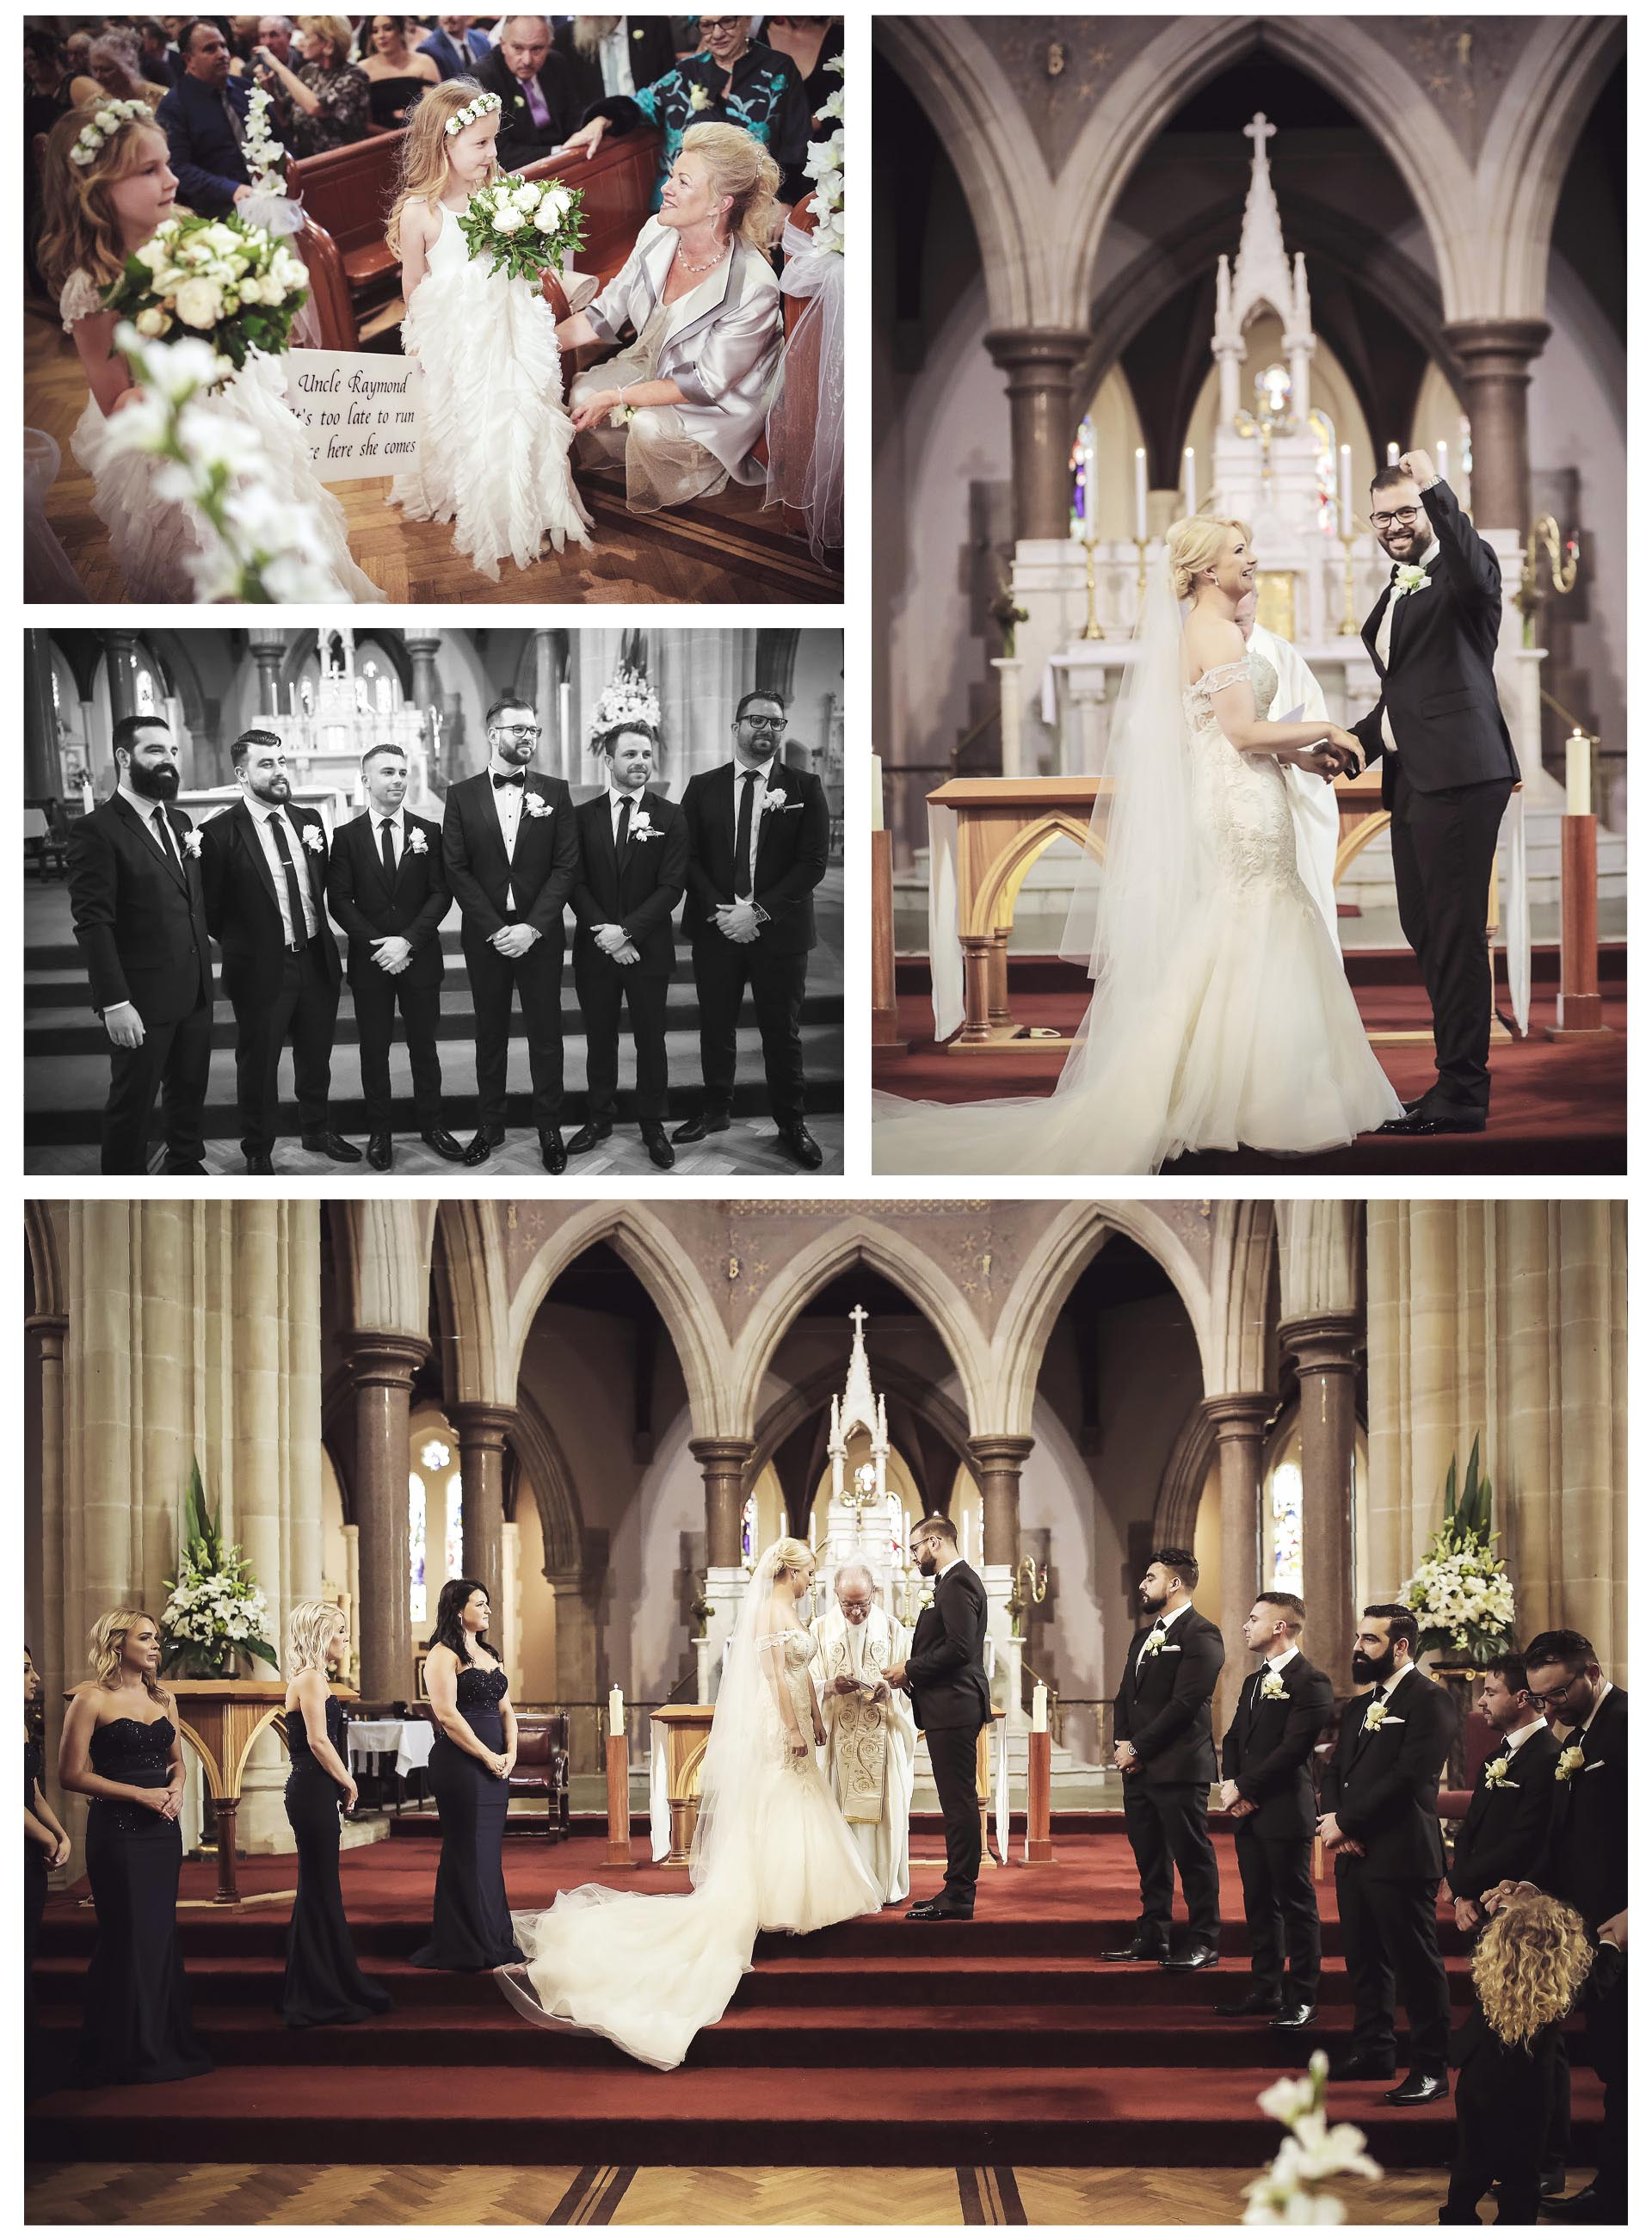 The groom and the bride get married in the church with the blessings of everyone